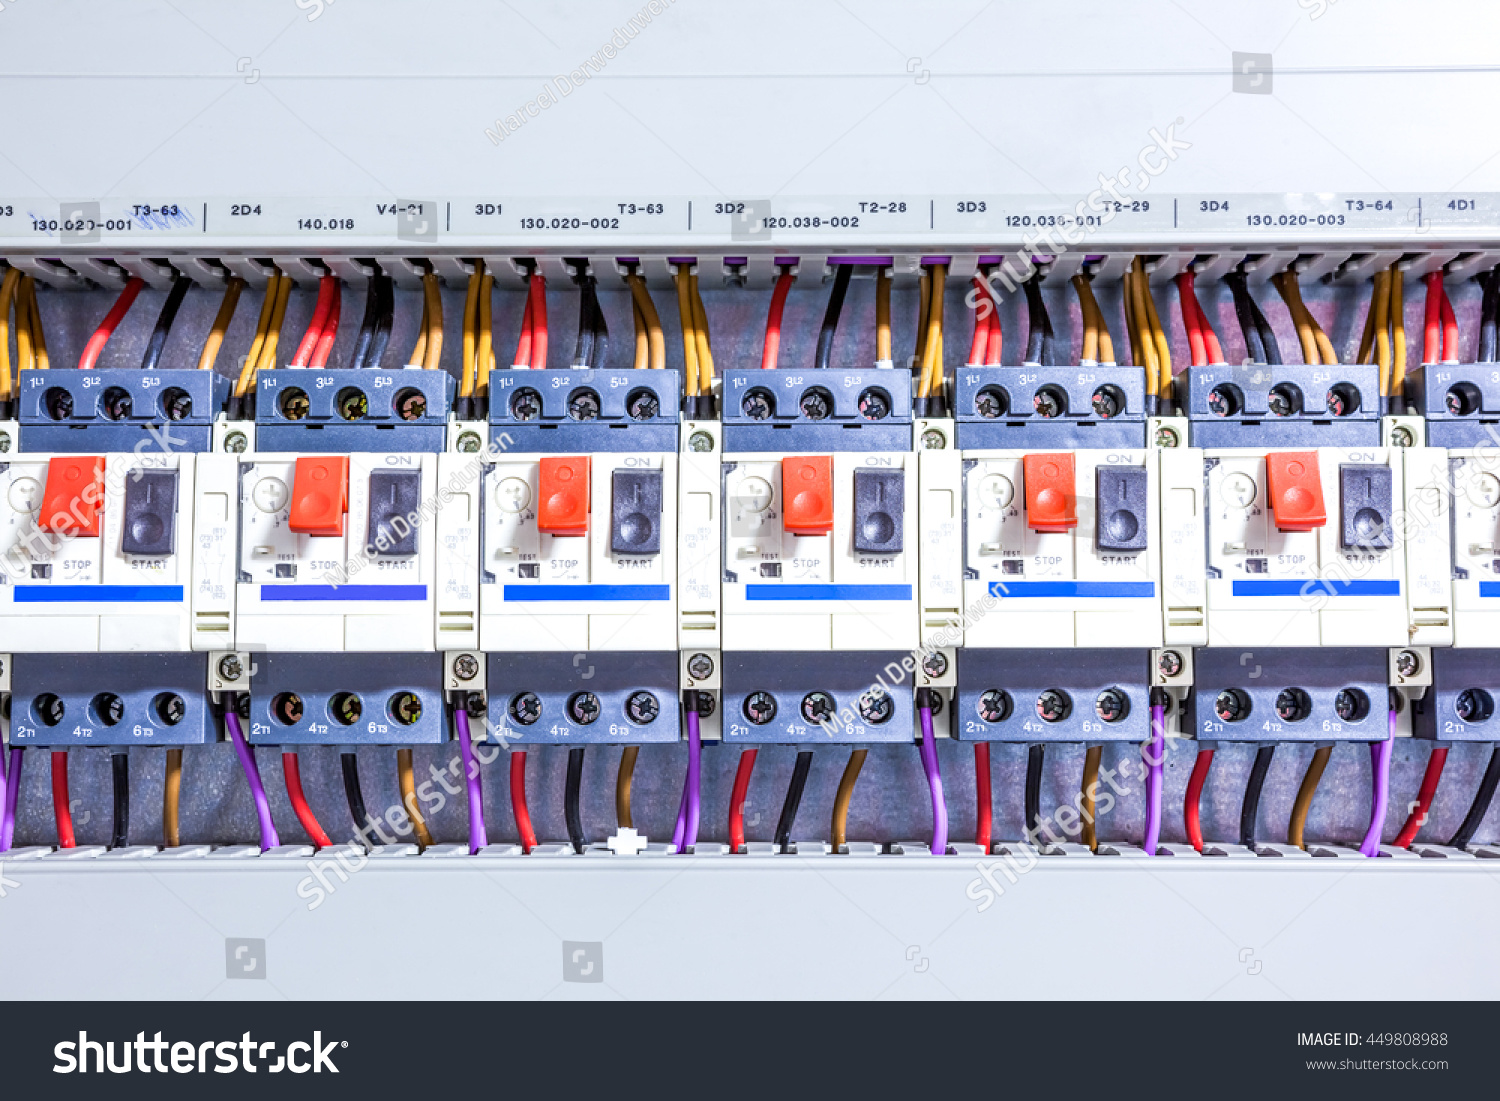 This Electricity Fuse Box System Whole Stock Photo Edit Now House Electrical Is An For The